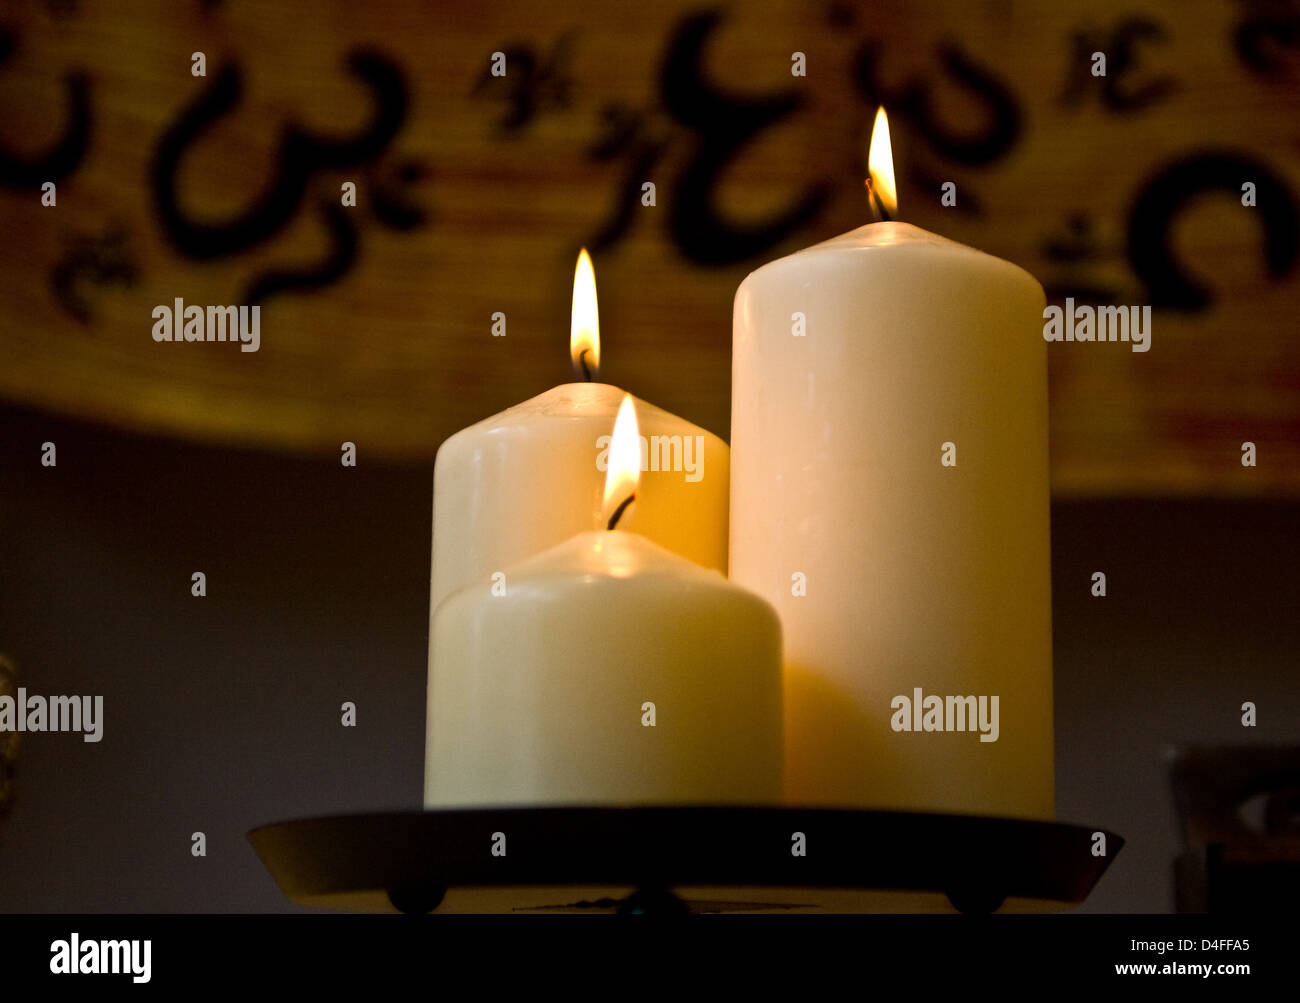 Candles on display in a yoga studio - Stock Image